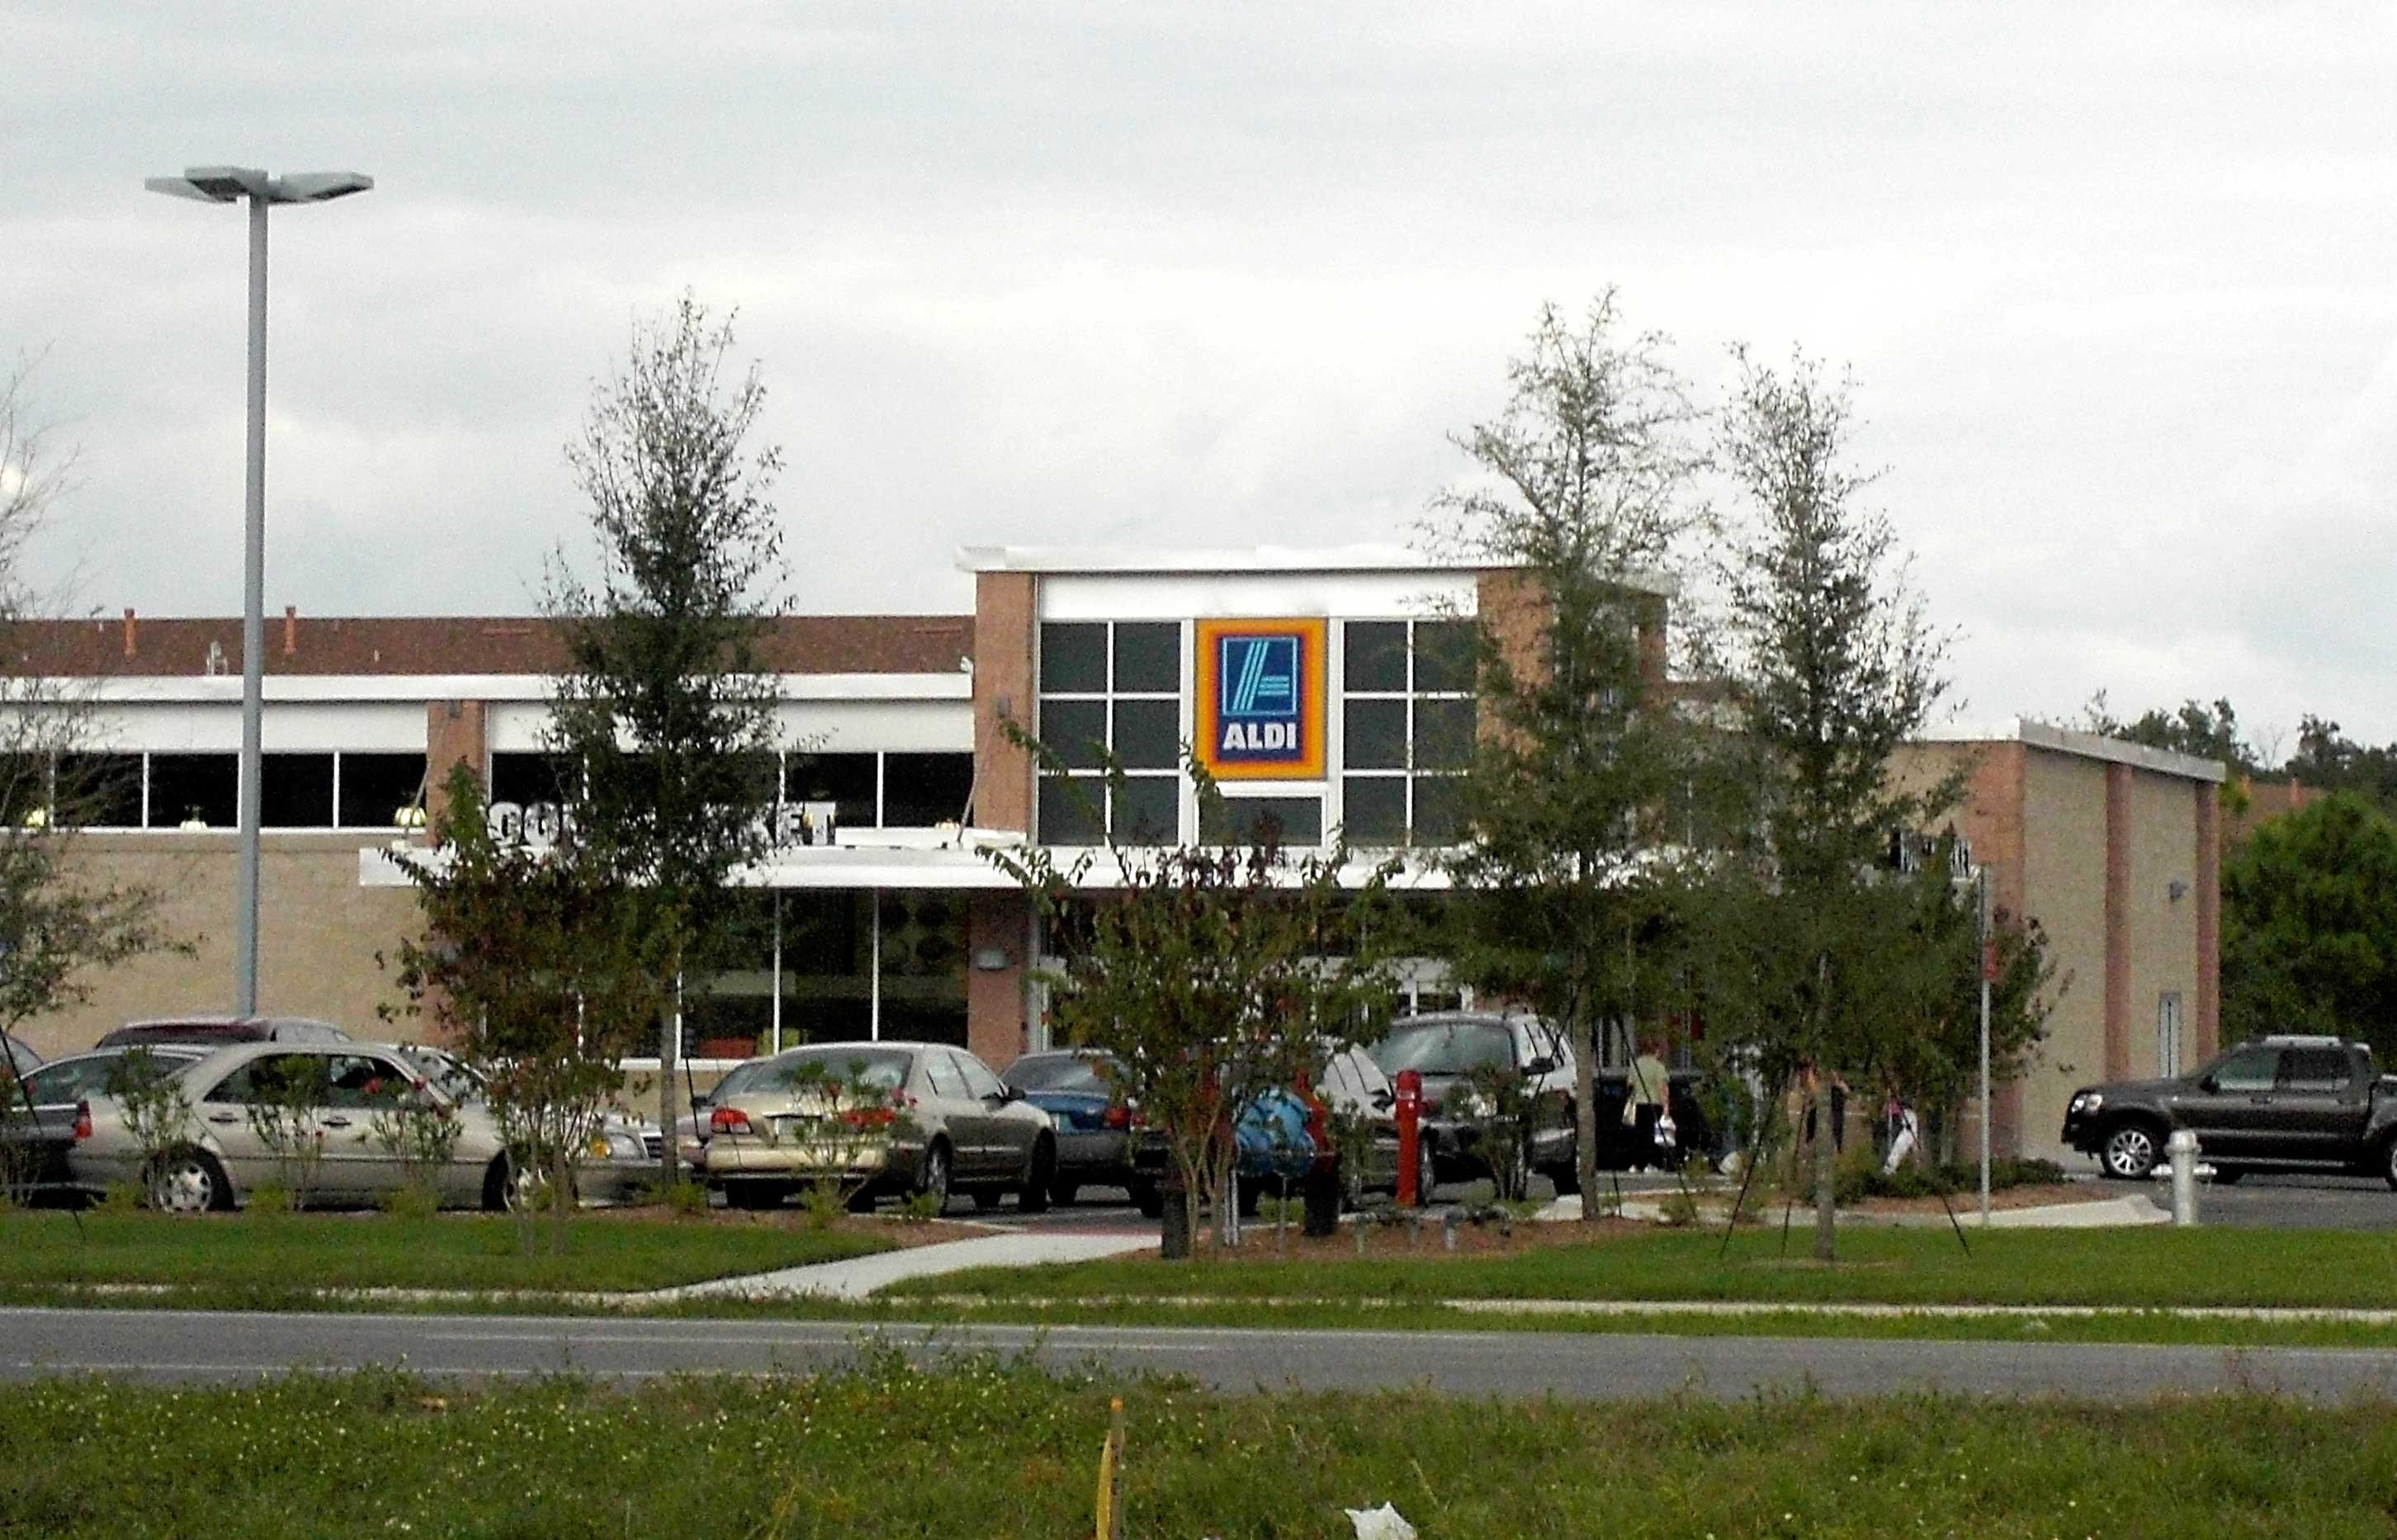 Day 44 – Aldi supermarket open in Sanford FL